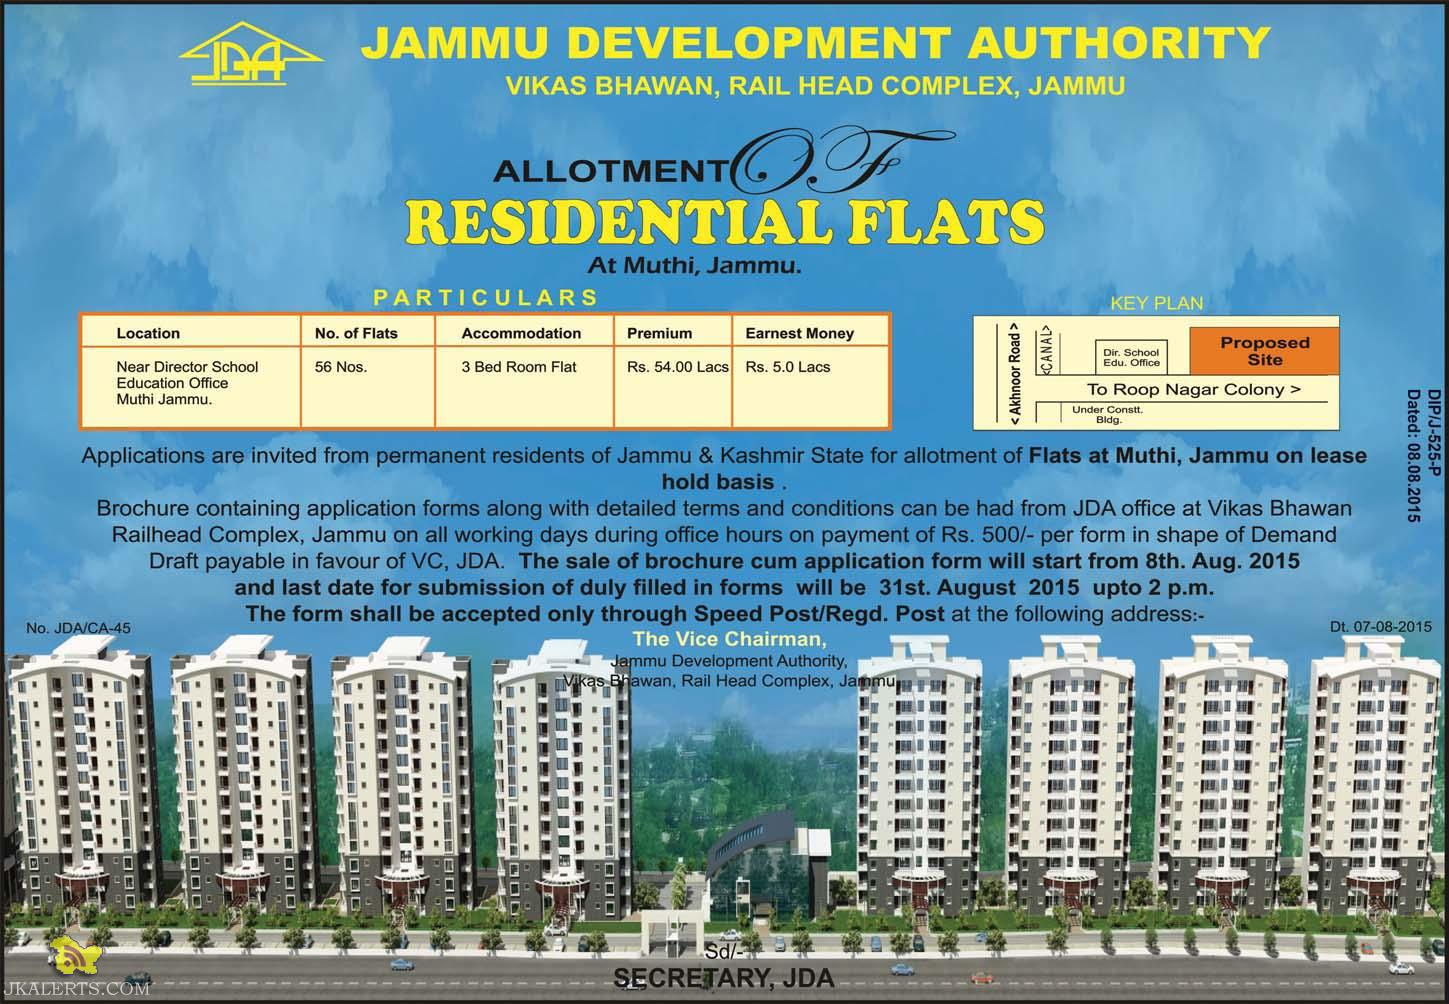 JDA Allotment of residential Flats at Muthi, Jammu, Sale of Flats, sale of Jda Flats in jammu, Jda new residential colony in jammu, 3 bhk flats in jammu